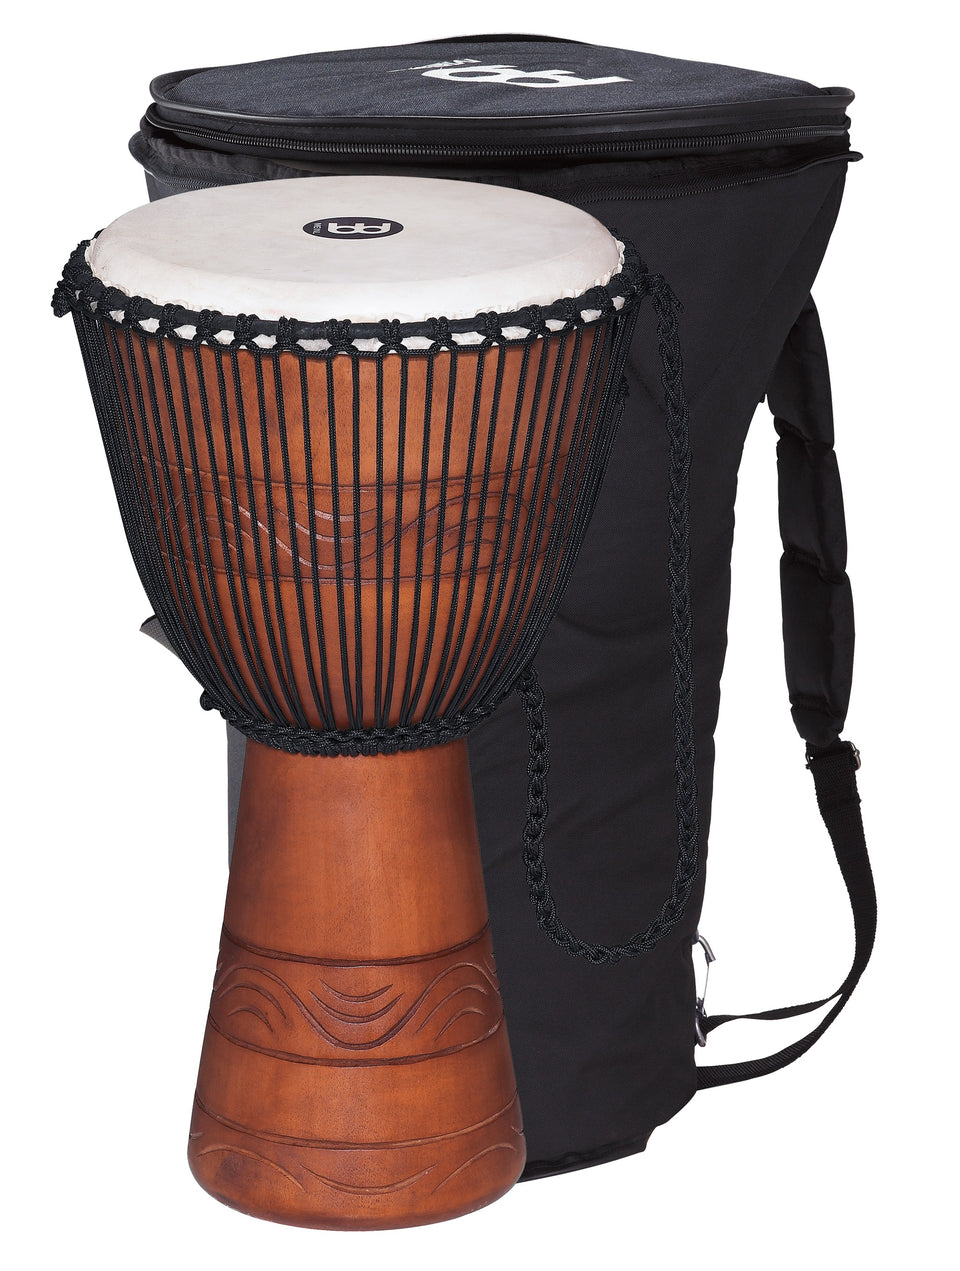 "Meinl ADJ2-L BAG Original African Style Rope Tuned Wood Djembe 12"" + Bag"